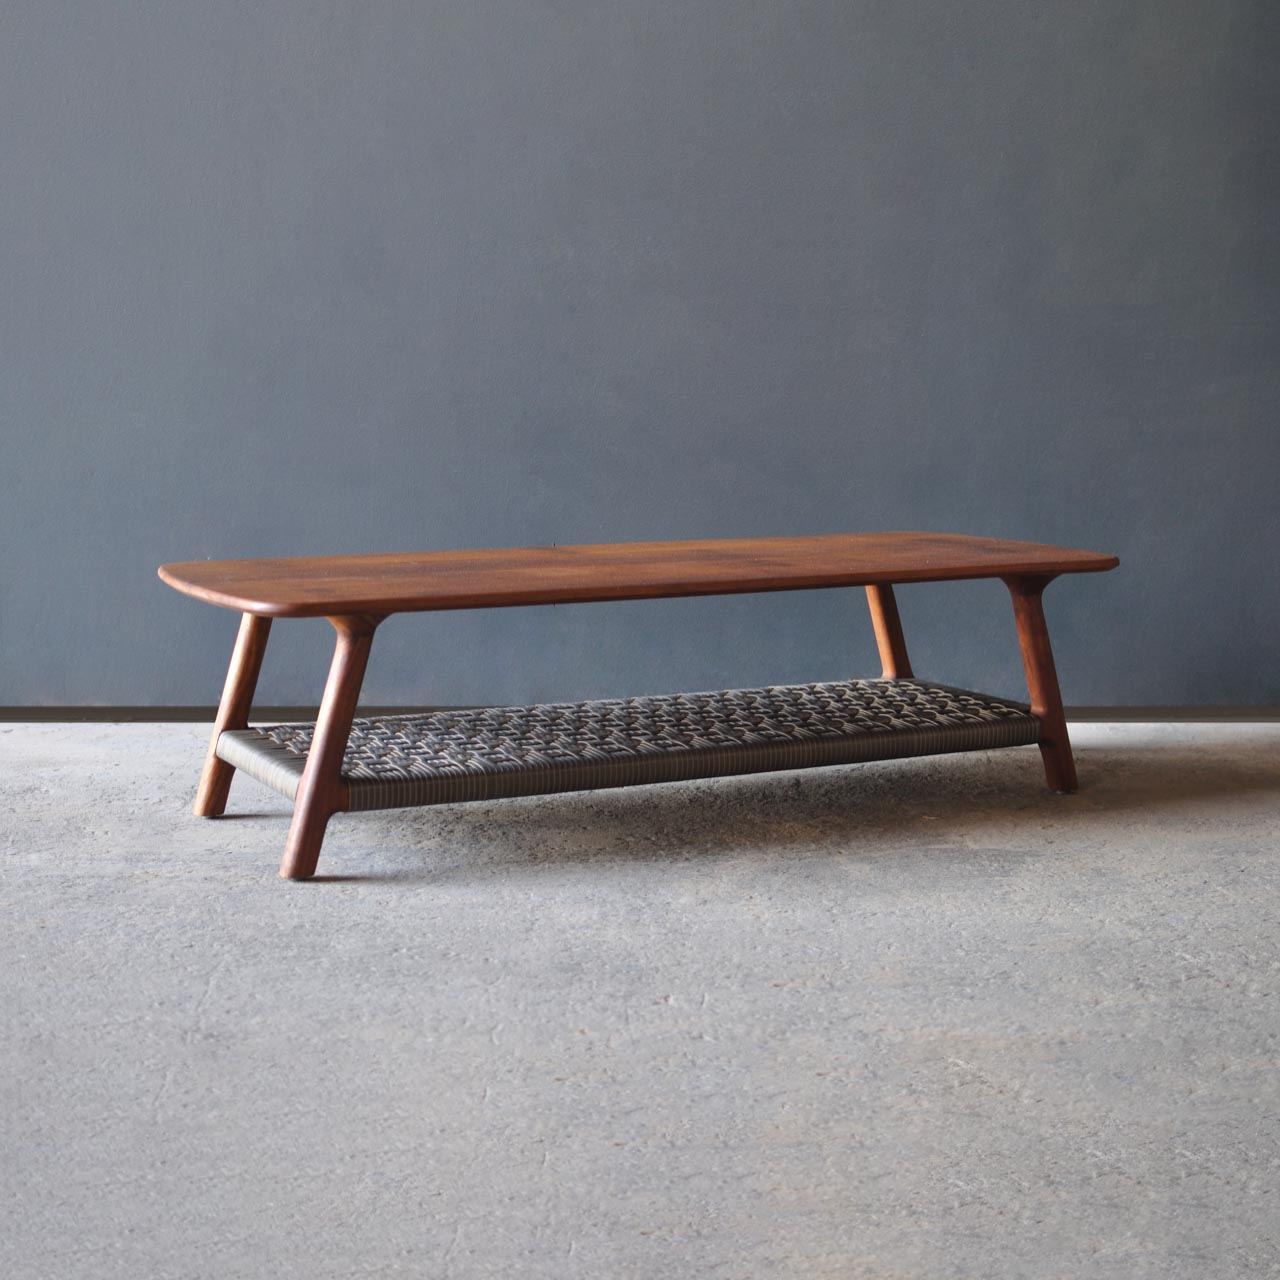 One Tribe Coffee Table by Vogel Design. The idea behind the One Tribe is that the design lends itself to being chameleon-like, by changing the weave of the shelf at the bottom, this coffee table becomes something completely different.